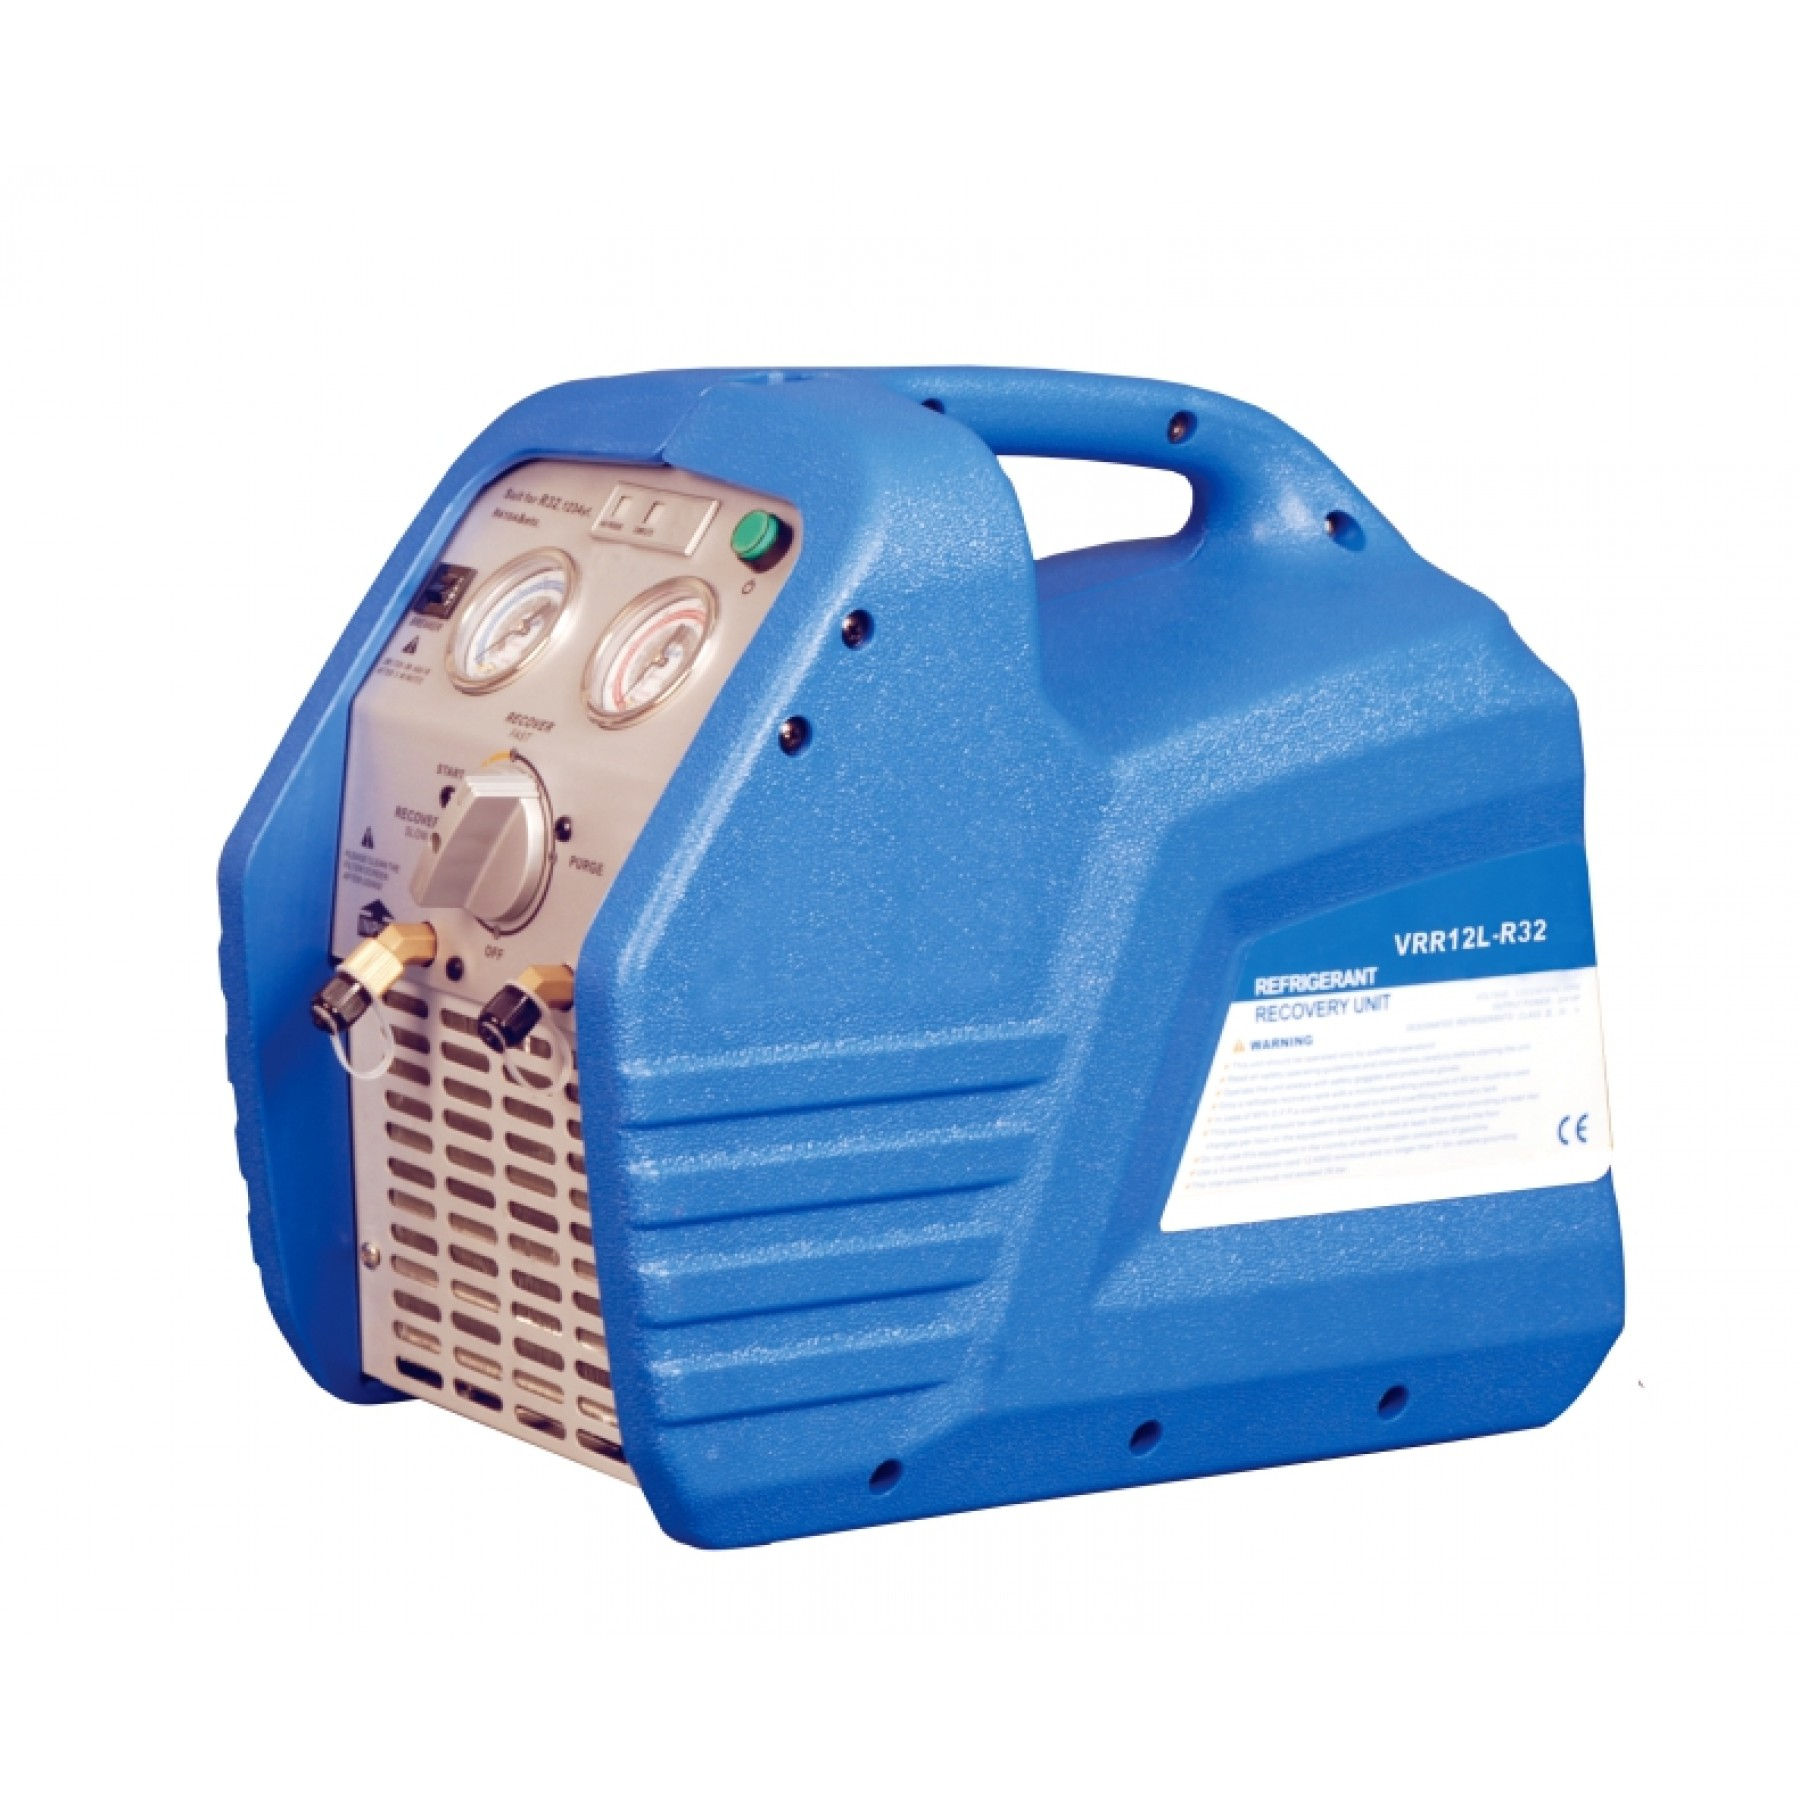 Value Recovery unit VRR12L-R32